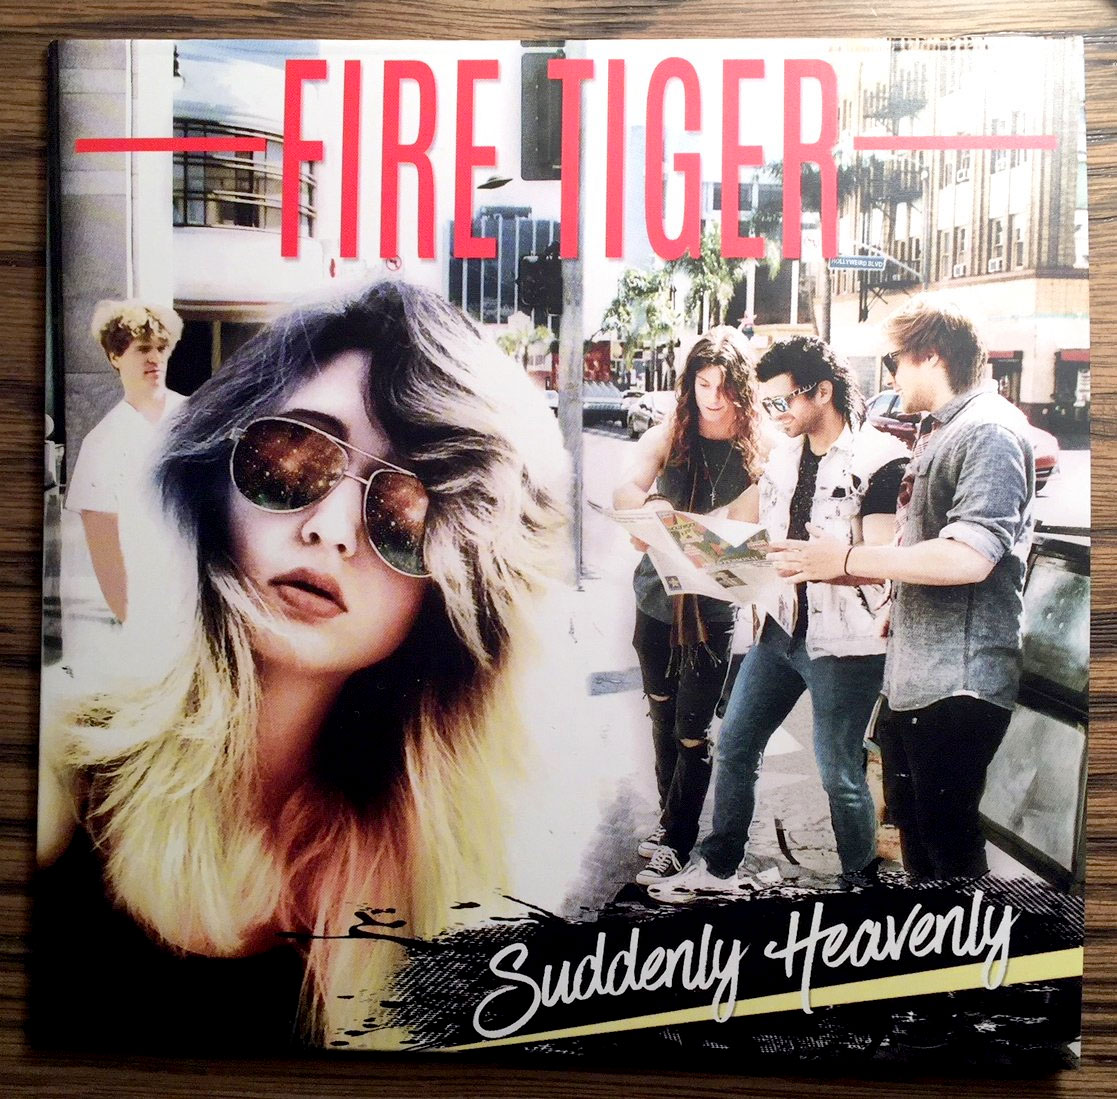 Fire Tiger's album Suddenly Heavenly